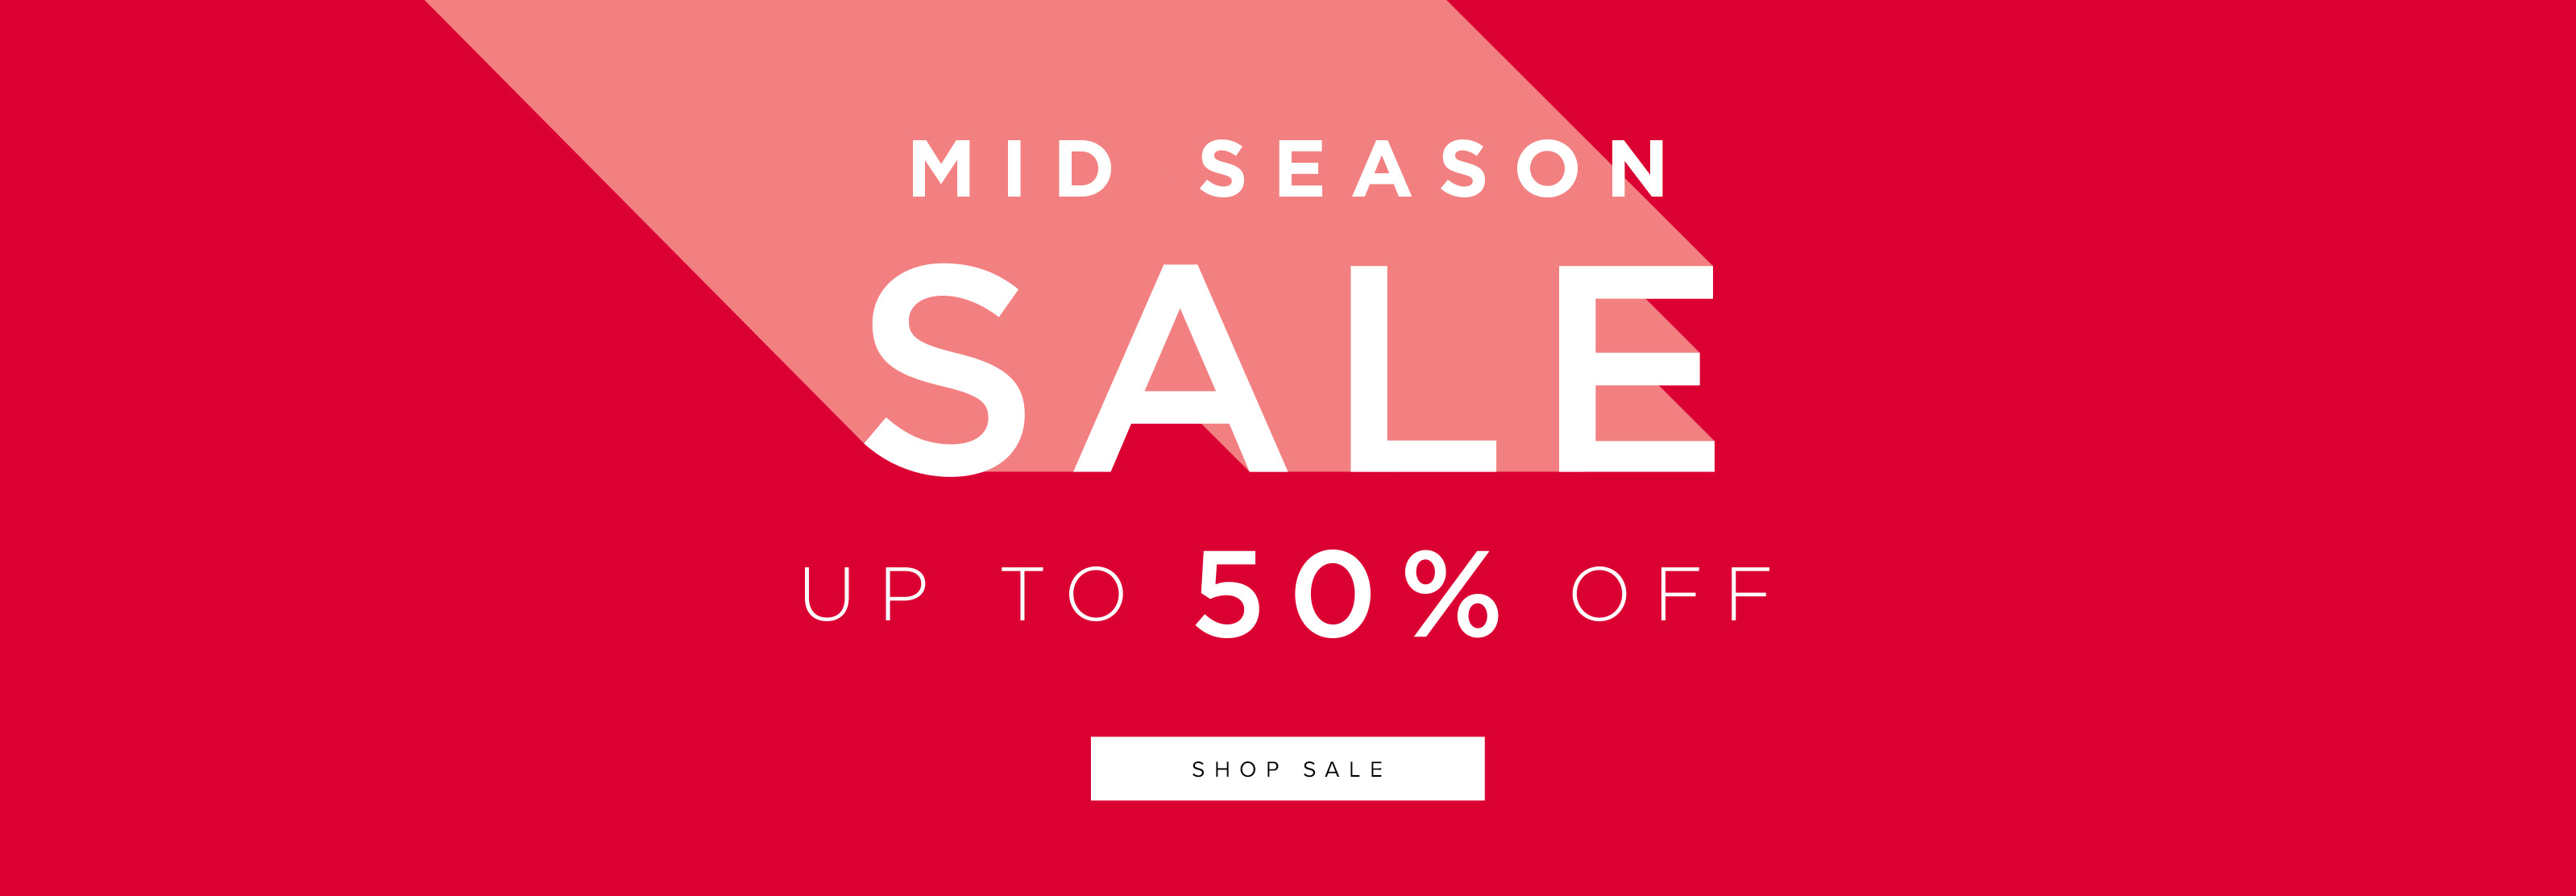 SALE Up To 50% Off. Shop Now